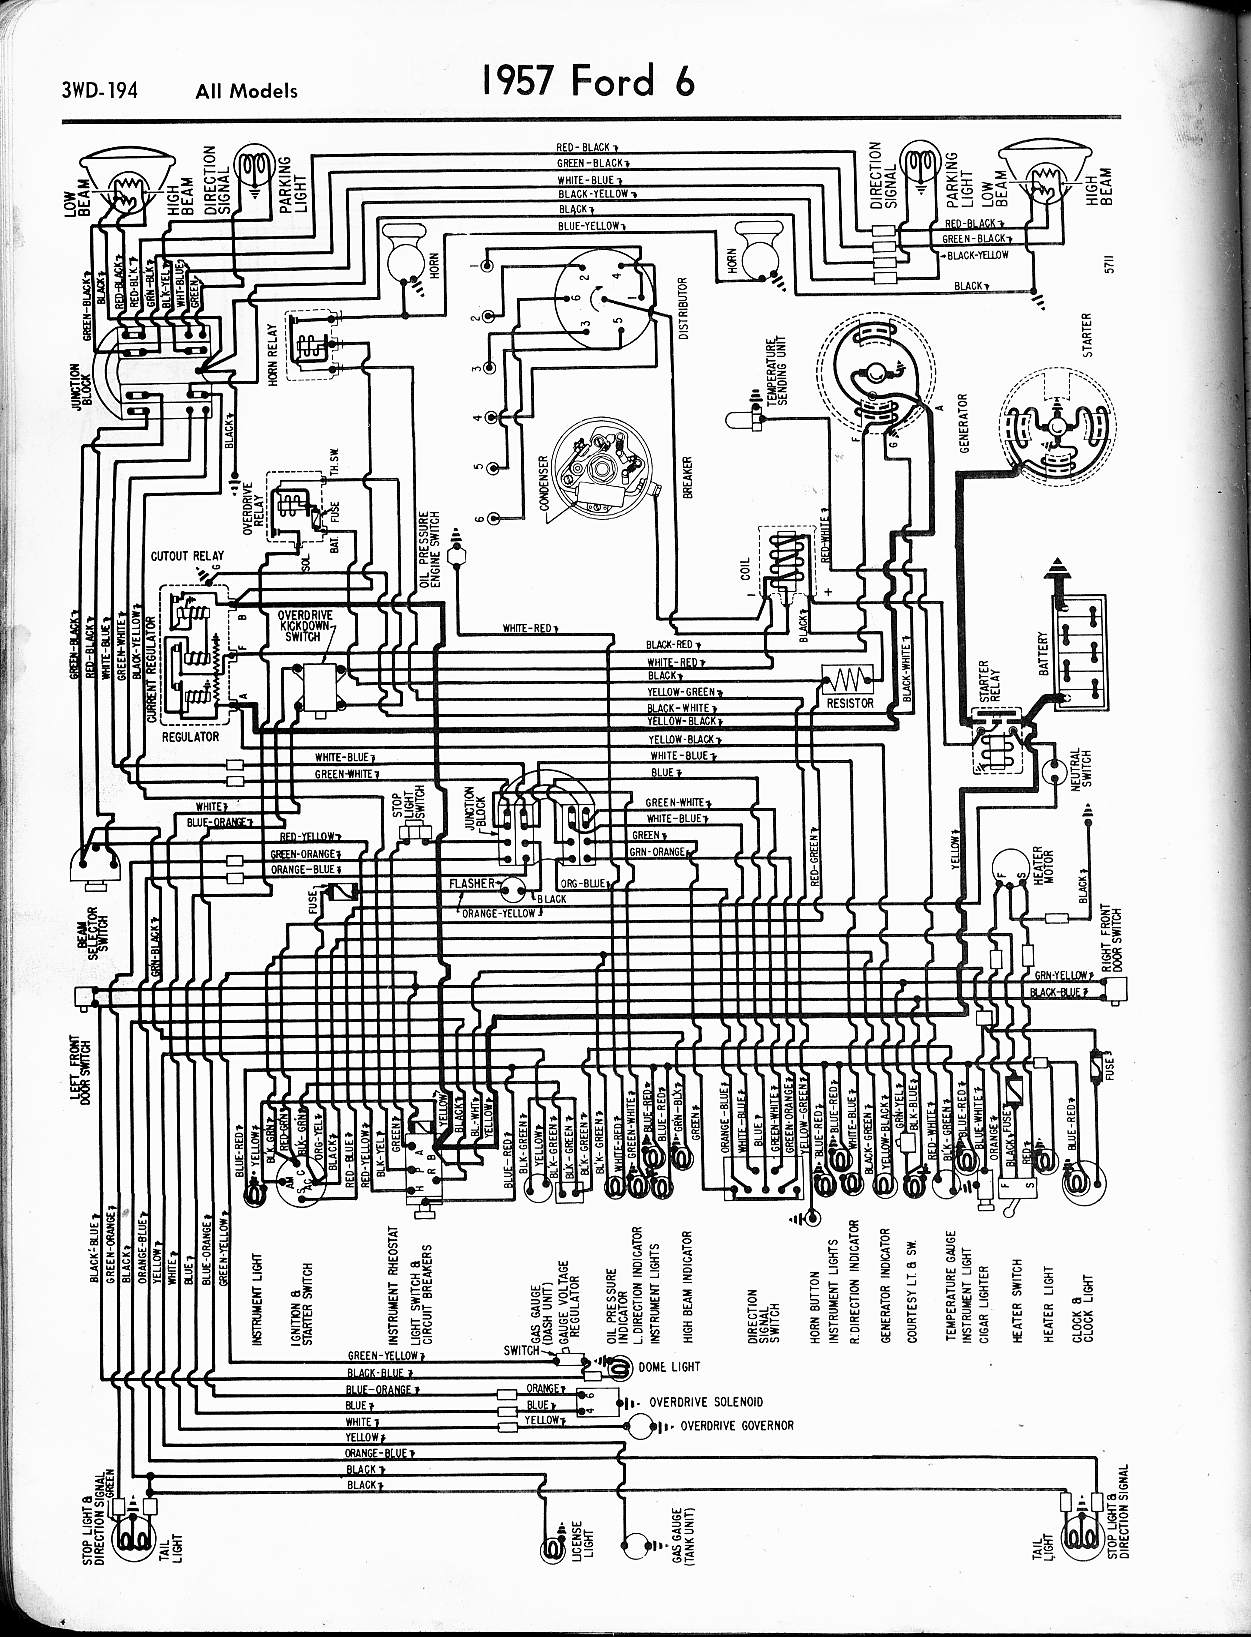 1965 Thunderbird Steering Column Parts Diagram Not Lossing Wiring Scion Xb Dome Light 1954 Ford Diagrams Third Level Rh 14 20 Jacobwinterstein Com 1961